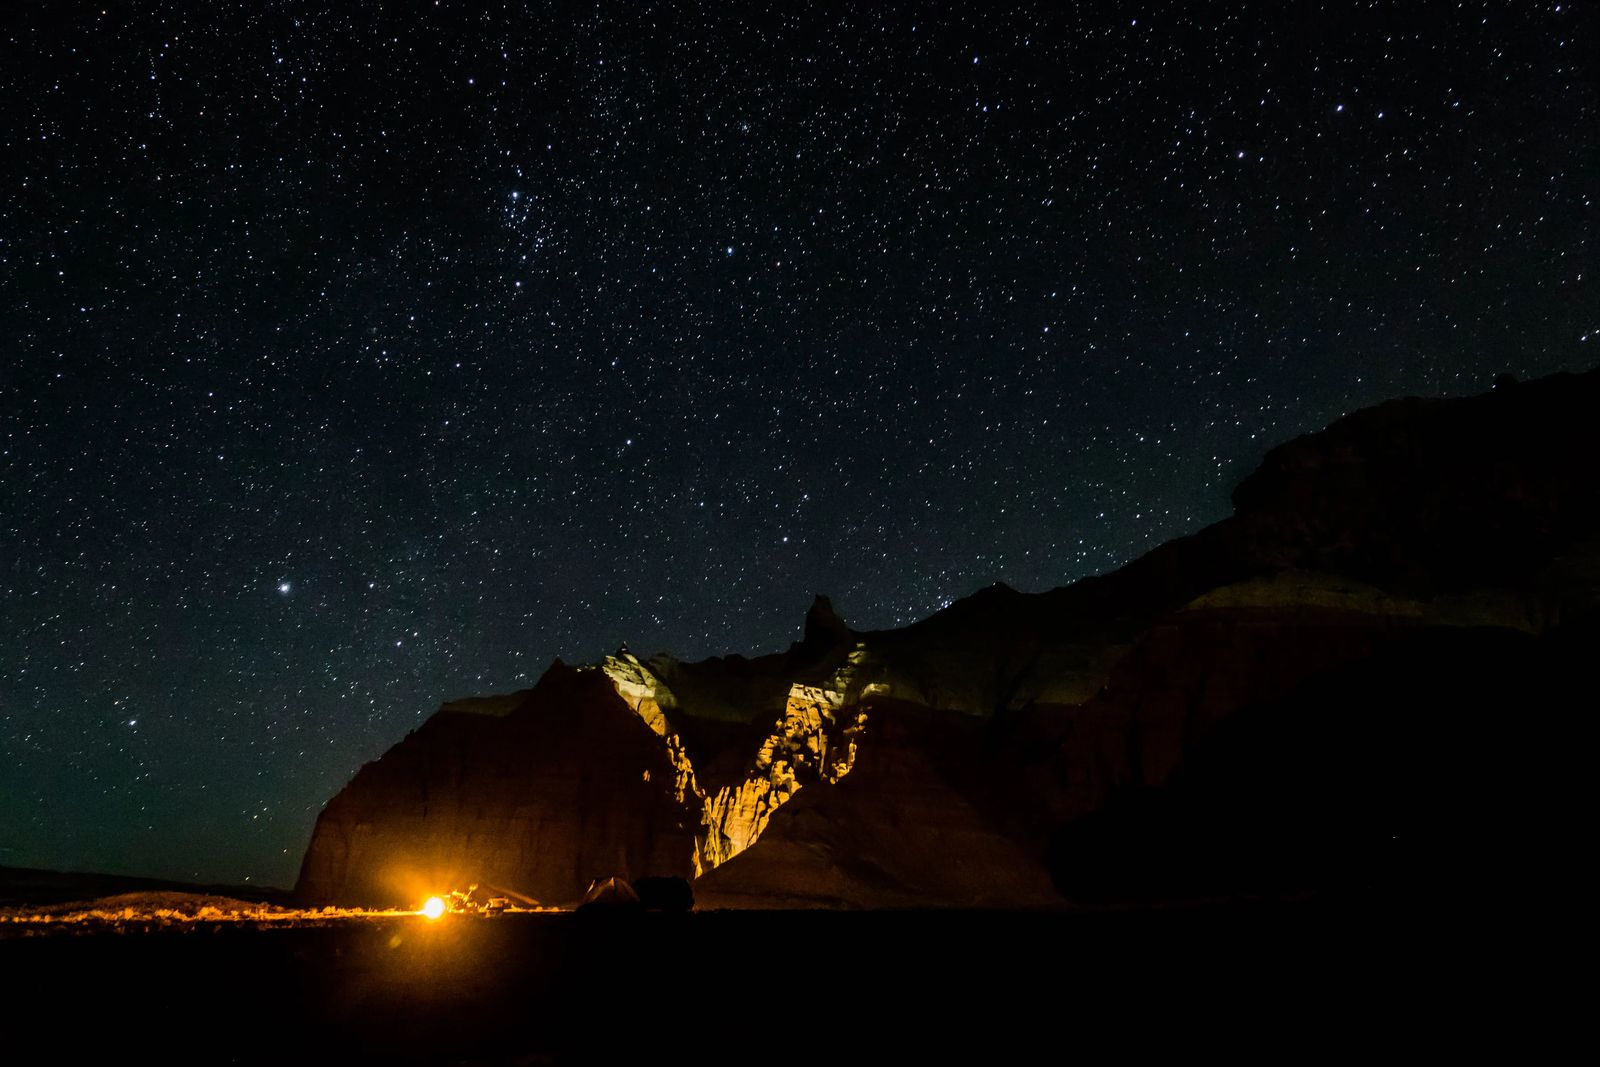 Night sky in Goblin Valley with camping fire lighting the mountain